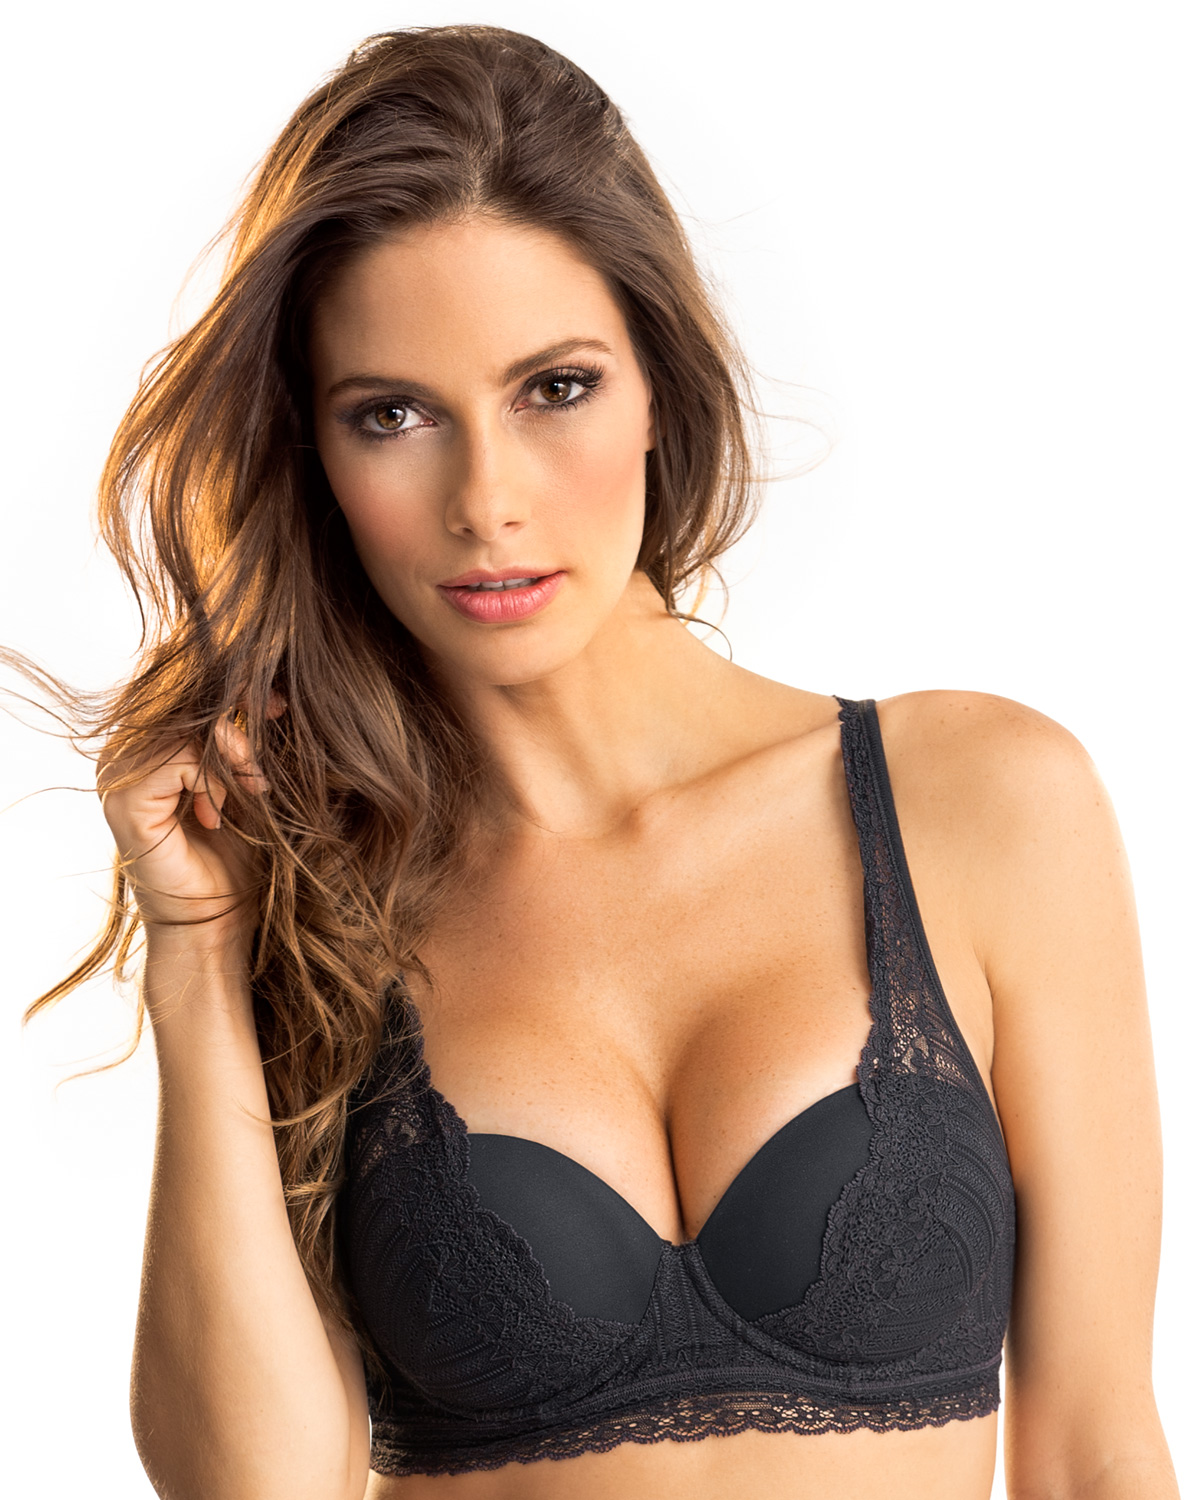 Our Perfect Push Up Bras have the same basic design as our push-up bras. A magic up bras is the sexiest way to enhance your cleavage. Magic-up bras give you a .